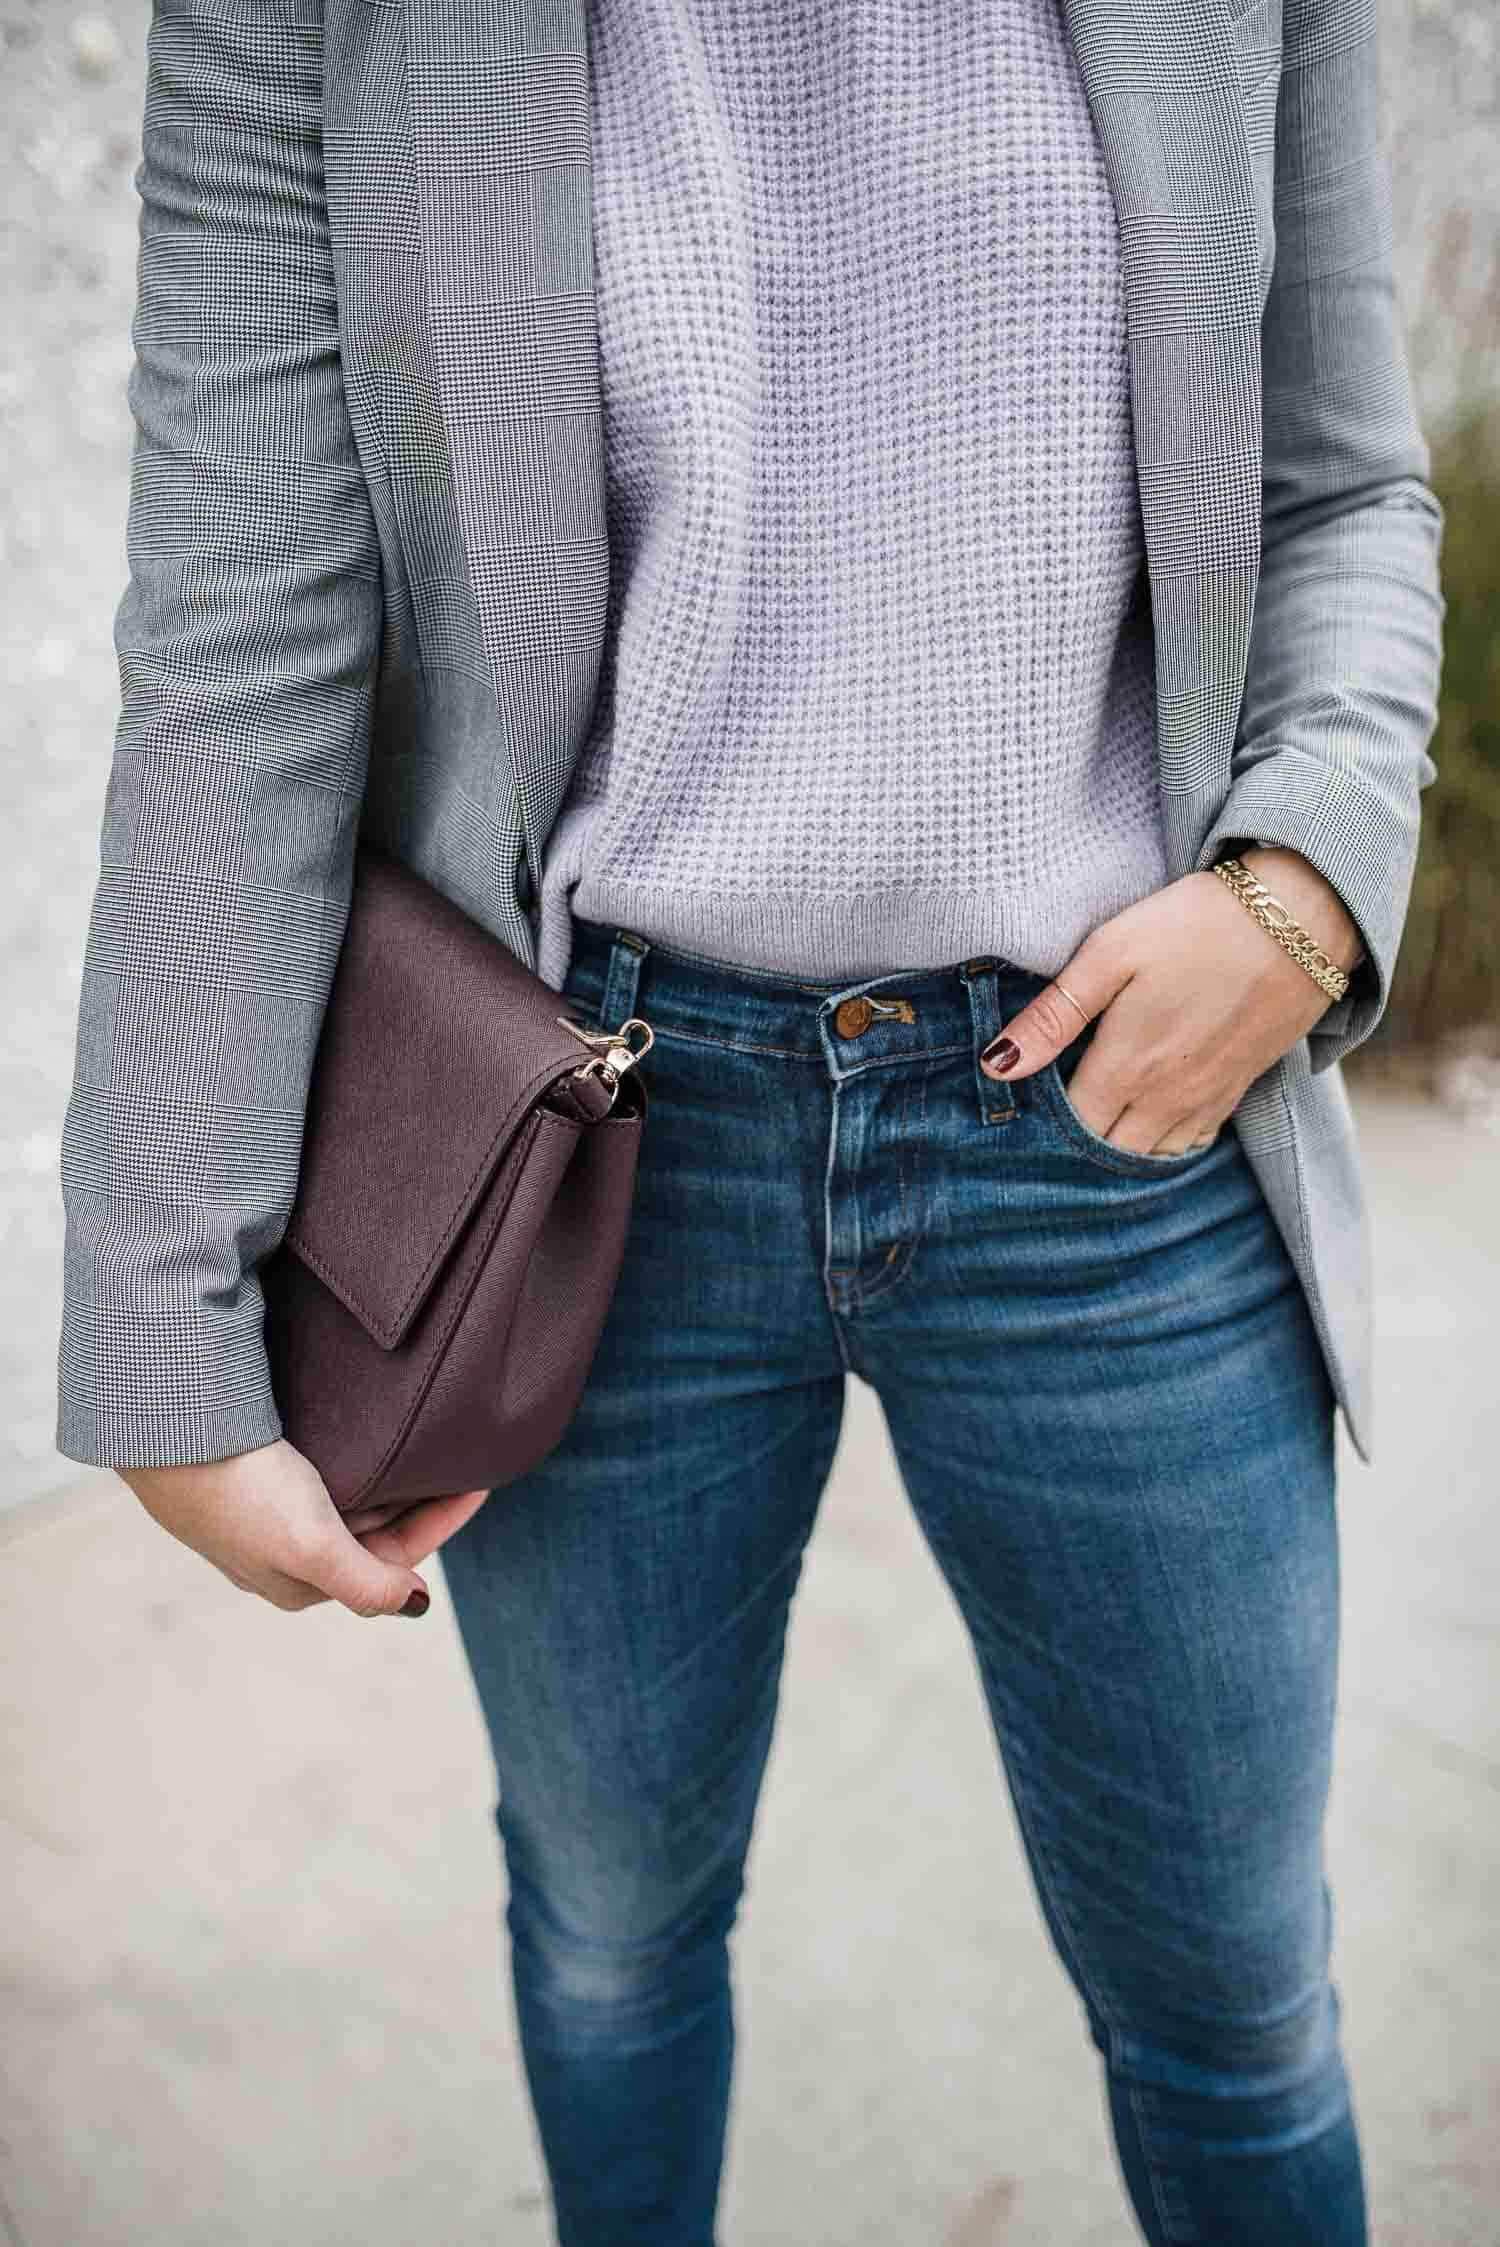 Express Blazer • Everlane Sweater